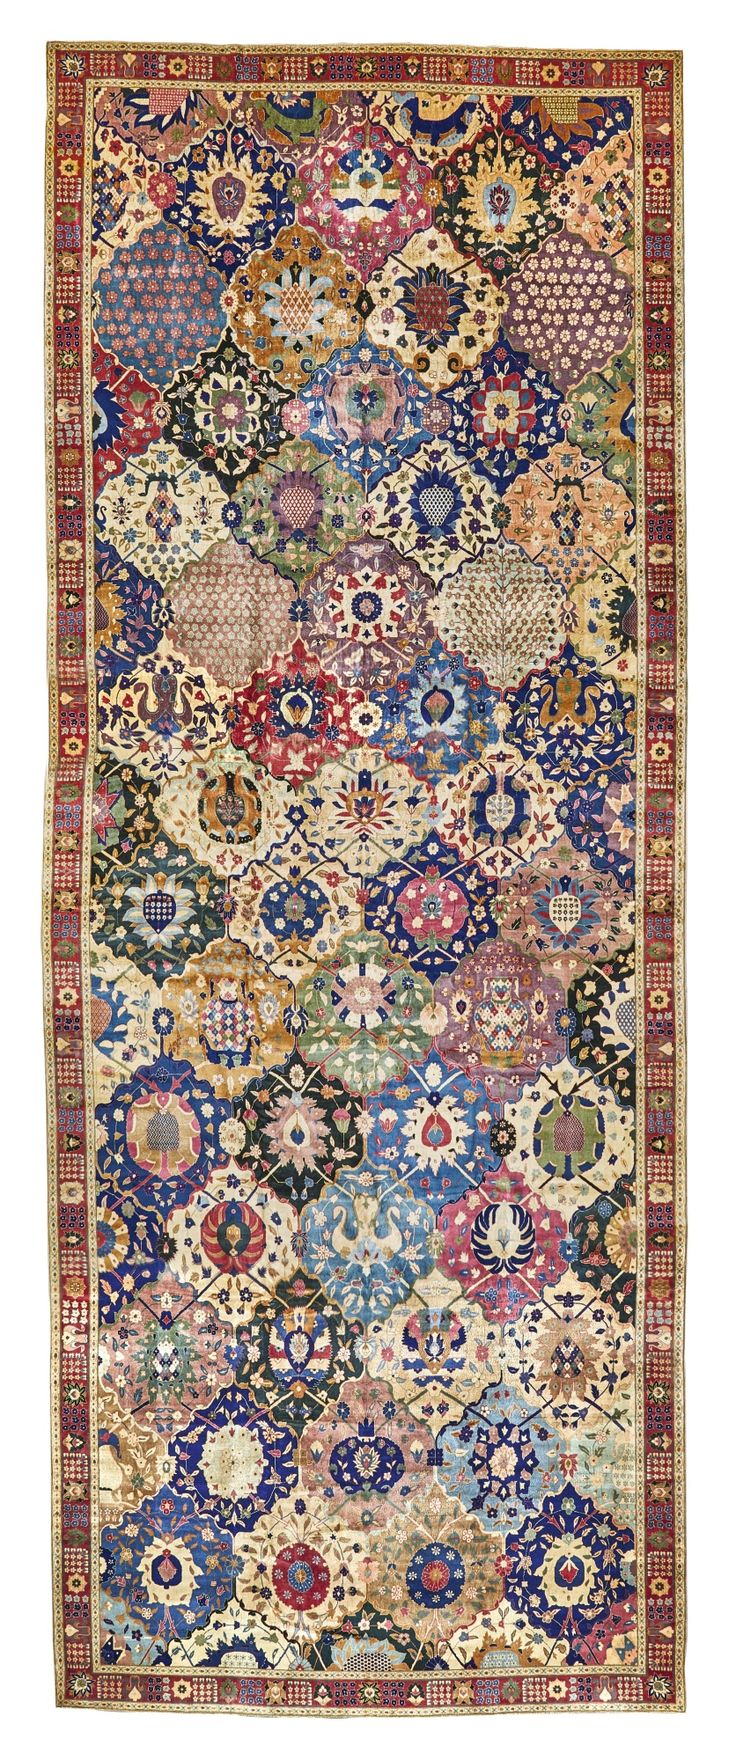 Indian Lahore garden gallery rug, with a 'compartment vase' design, approximately 736 by 281cm, first quarter 20th century, Sotheby's